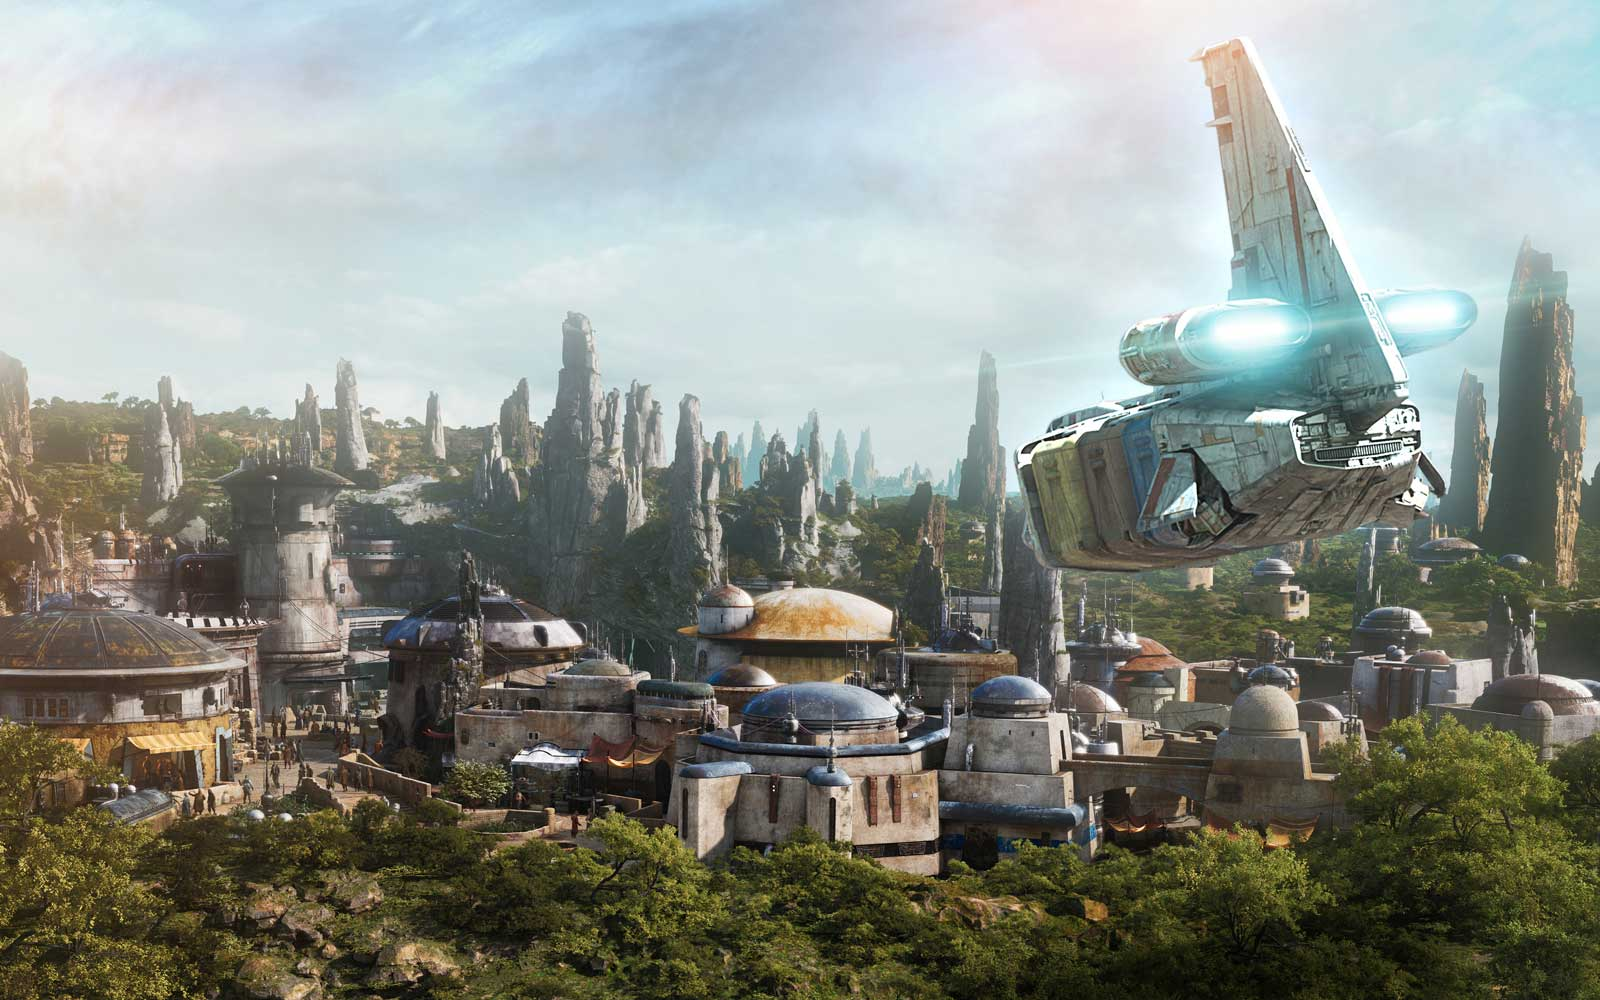 You'll Need More Than a Disneyland Ticket to Get Into Star Wars Land When It Opens This Summer